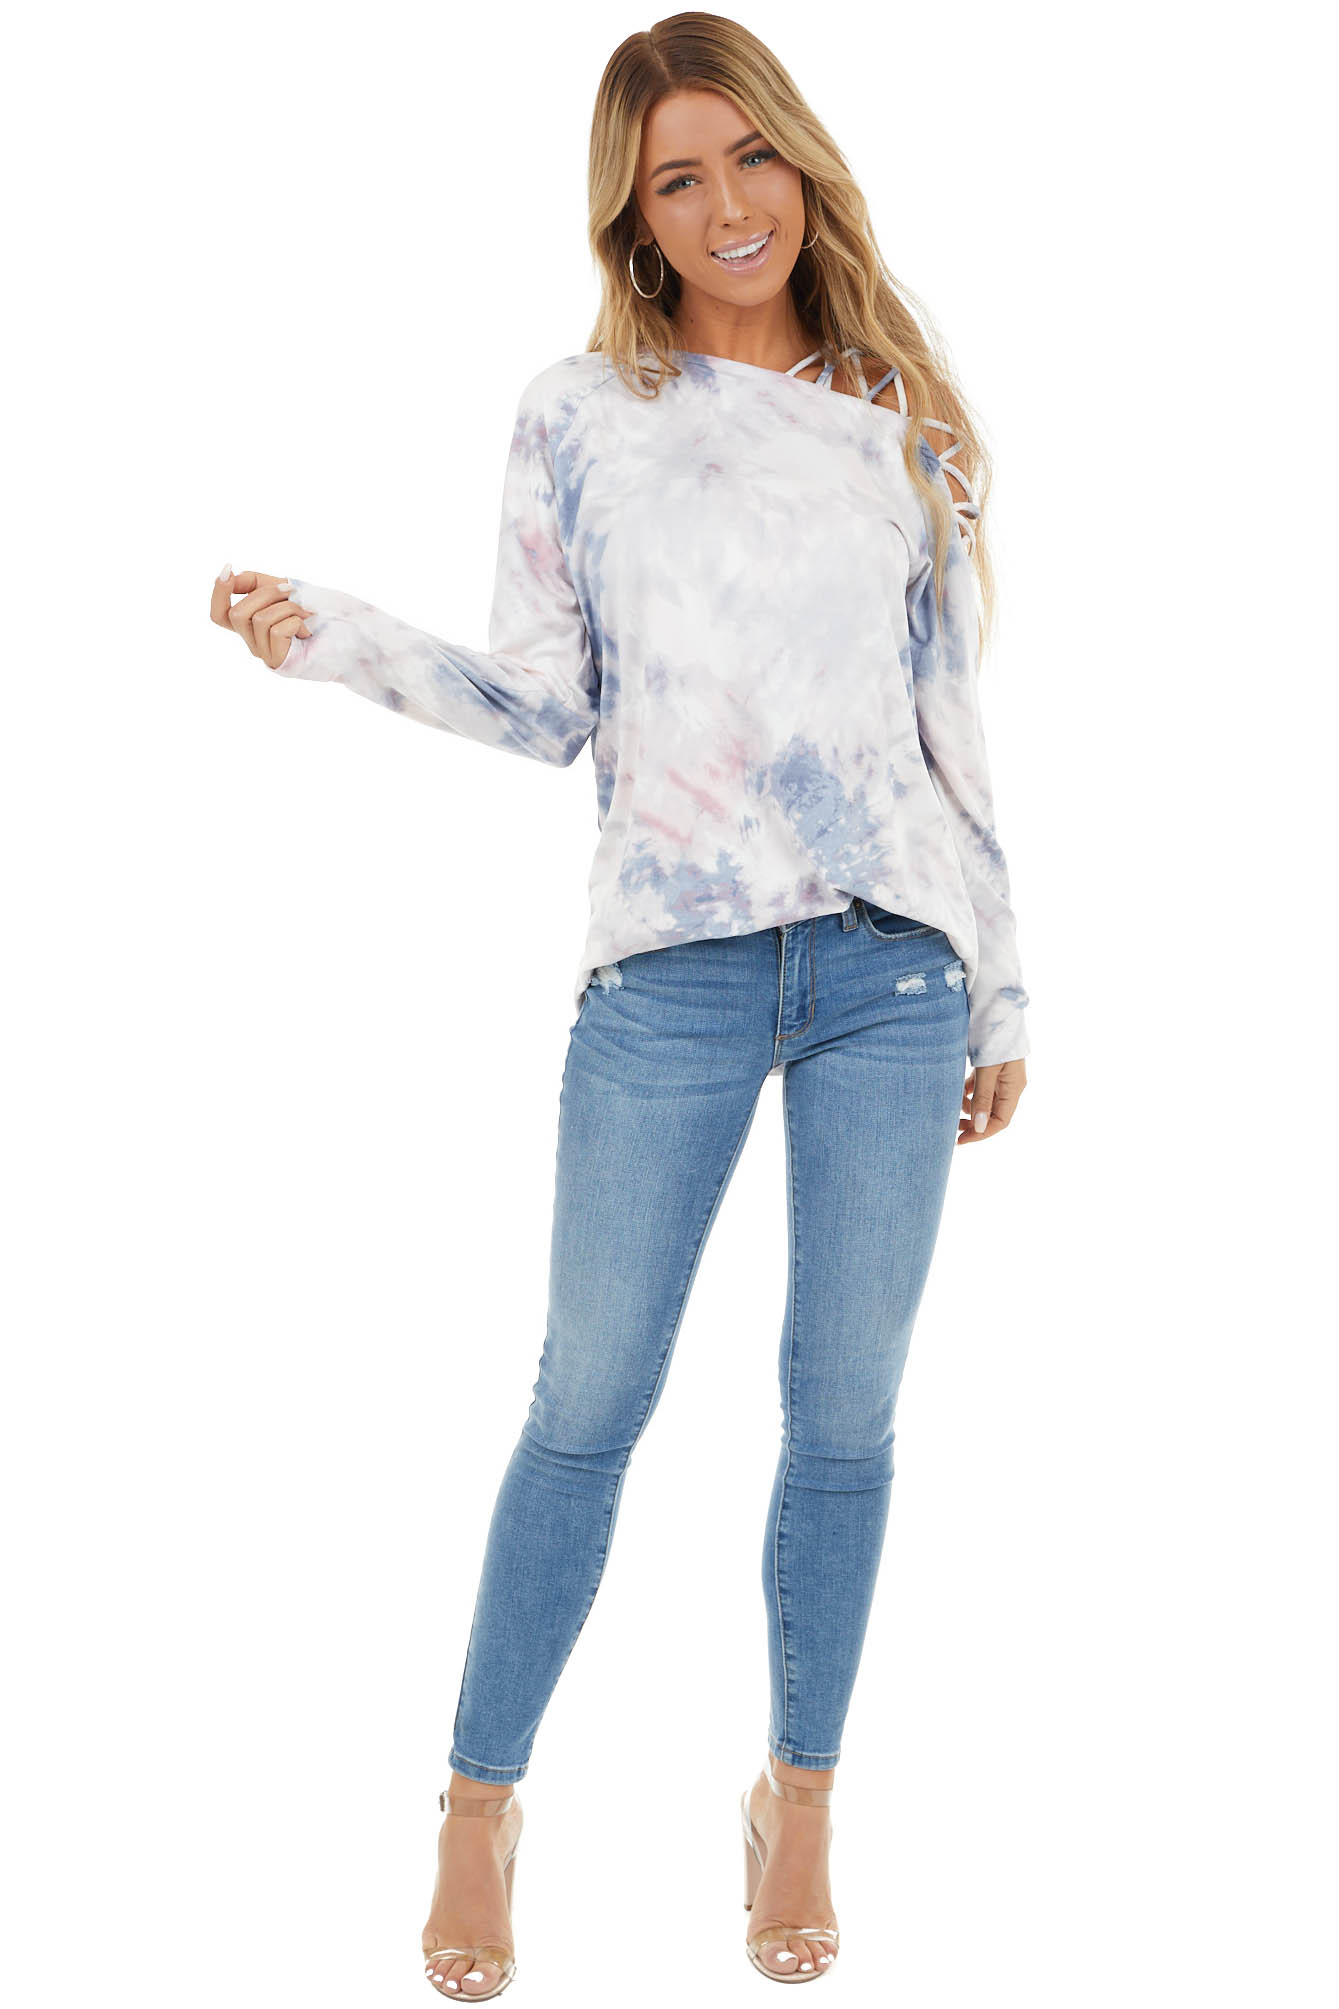 Navy and Fuchsia Tie Dye Top with Criss Cross Shoulder